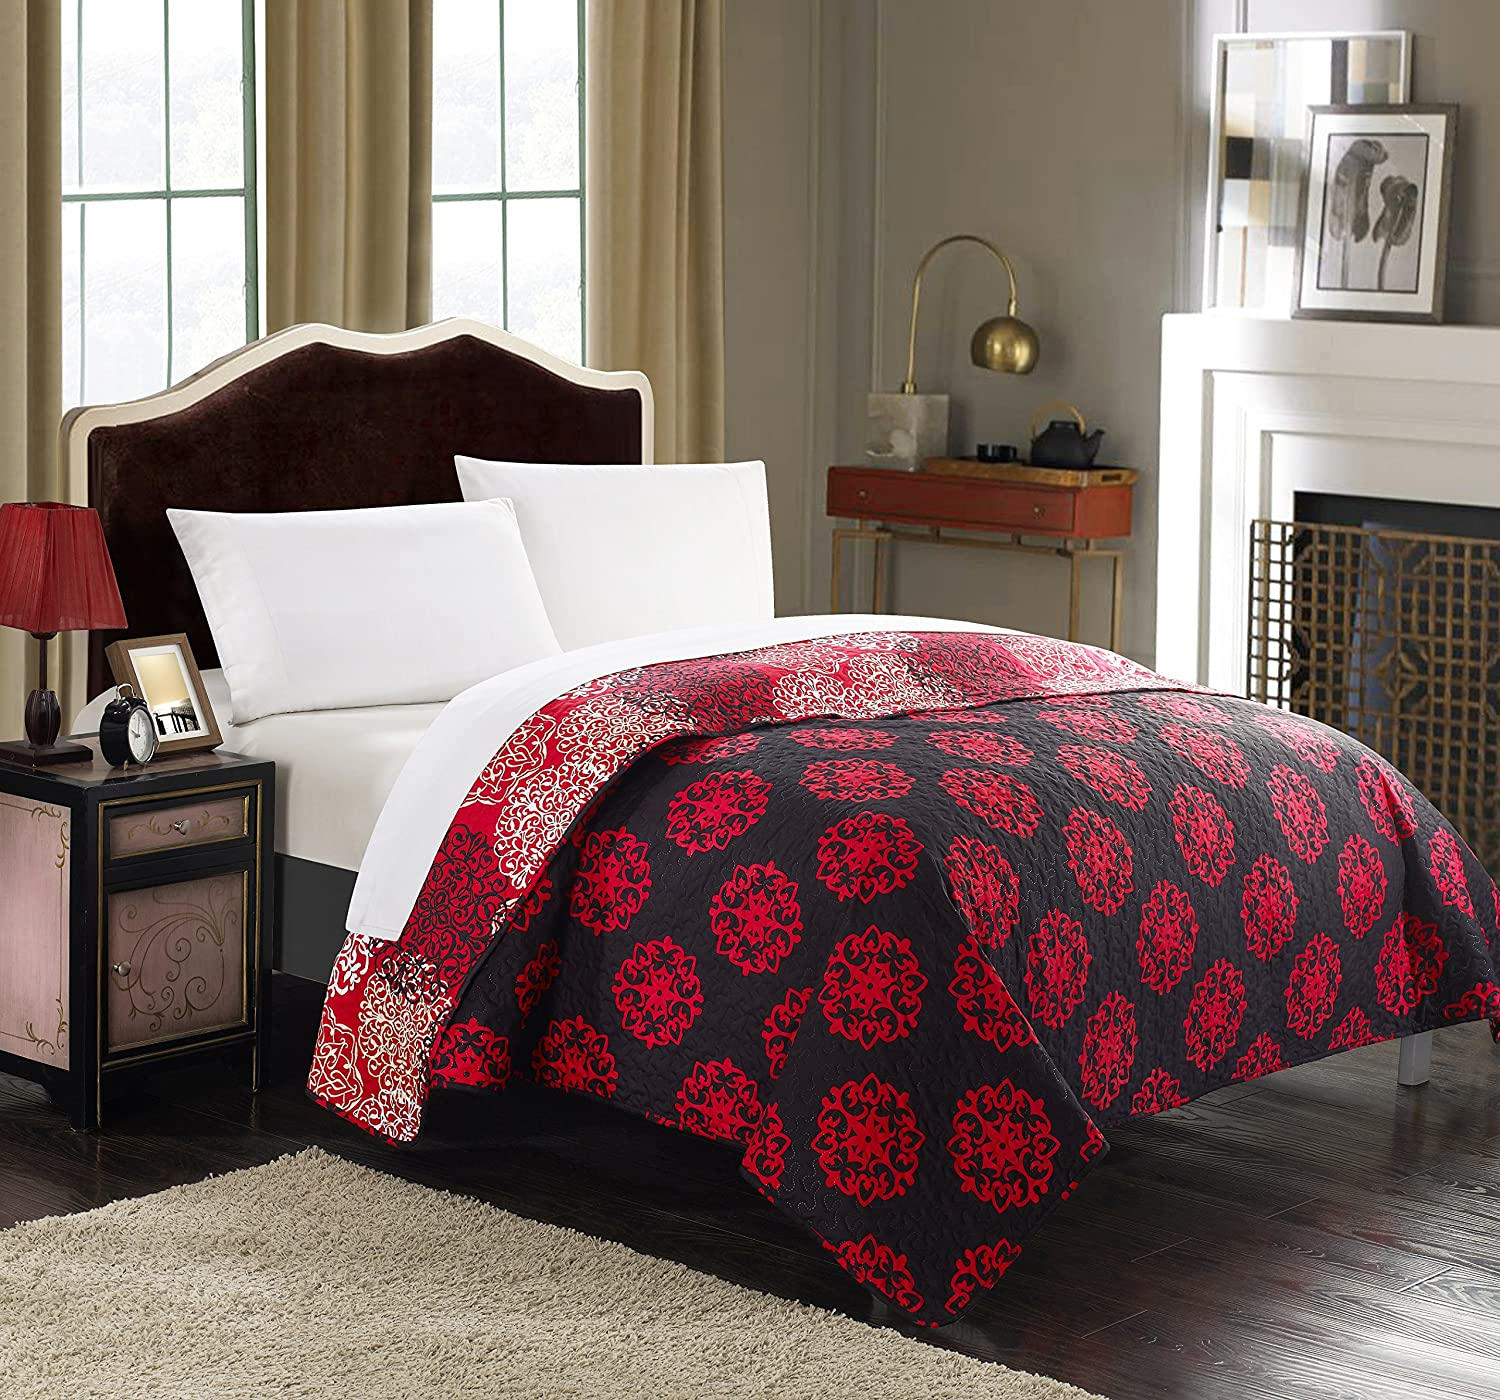 King Chic Home 1 Piece Judith Boho Inspired Reversible Print Quilt Set Beige